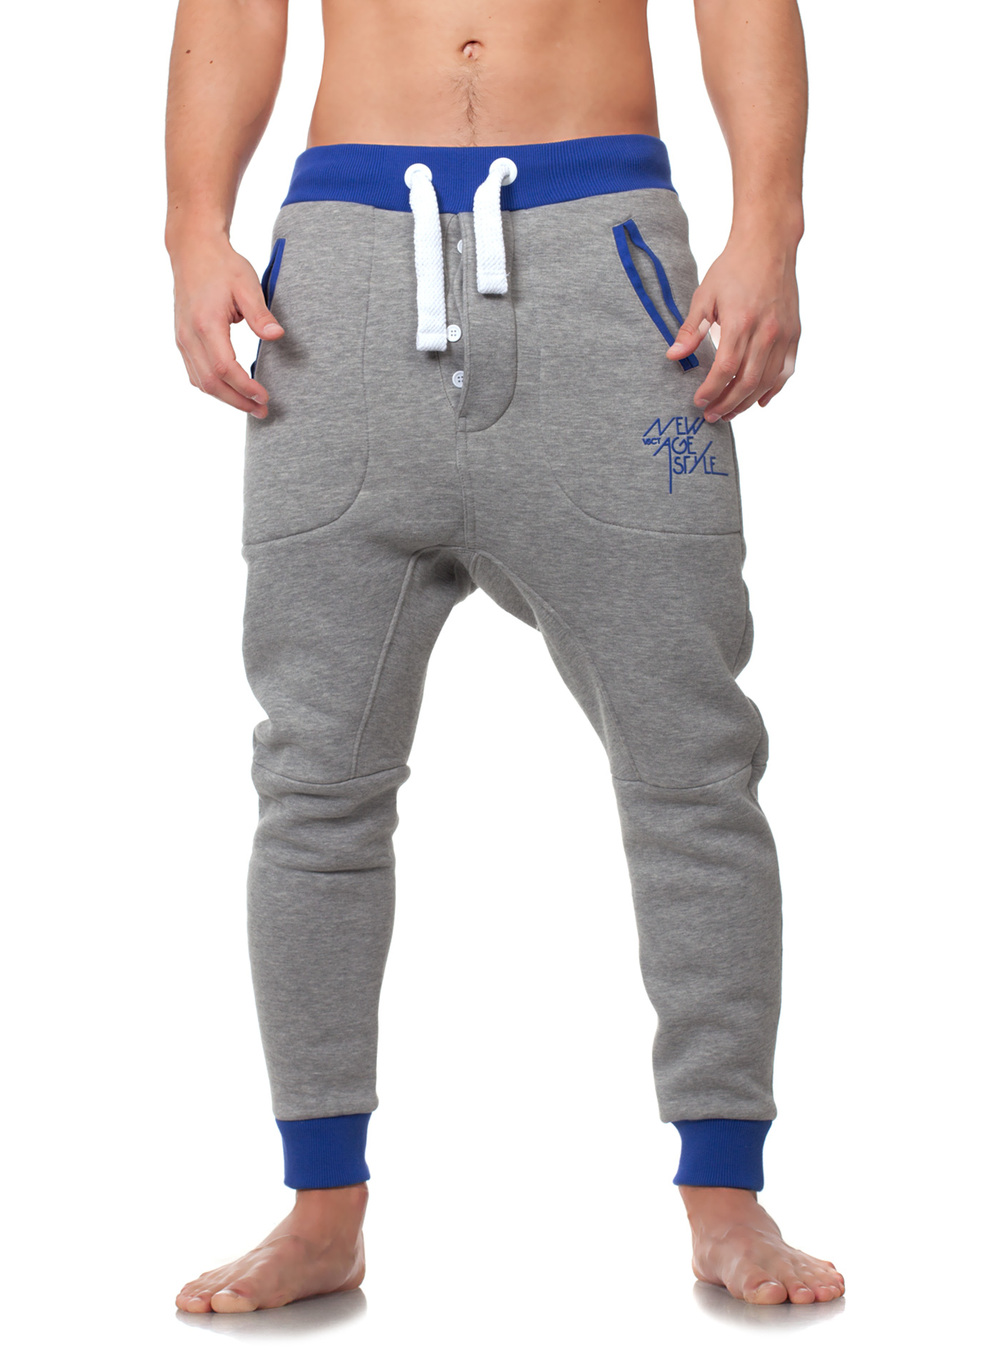 Mar 10, · Best Answer: i live in canada too. i loveee baggy sweat pants. it is super easy, i have so many pairs. i have bought pairs at Roots, Garage and Ardene's. just but like 2 sizes bigger. some times it has to be 3, depending on the pants. like i am a medium usually, so i buy Status: Resolved.